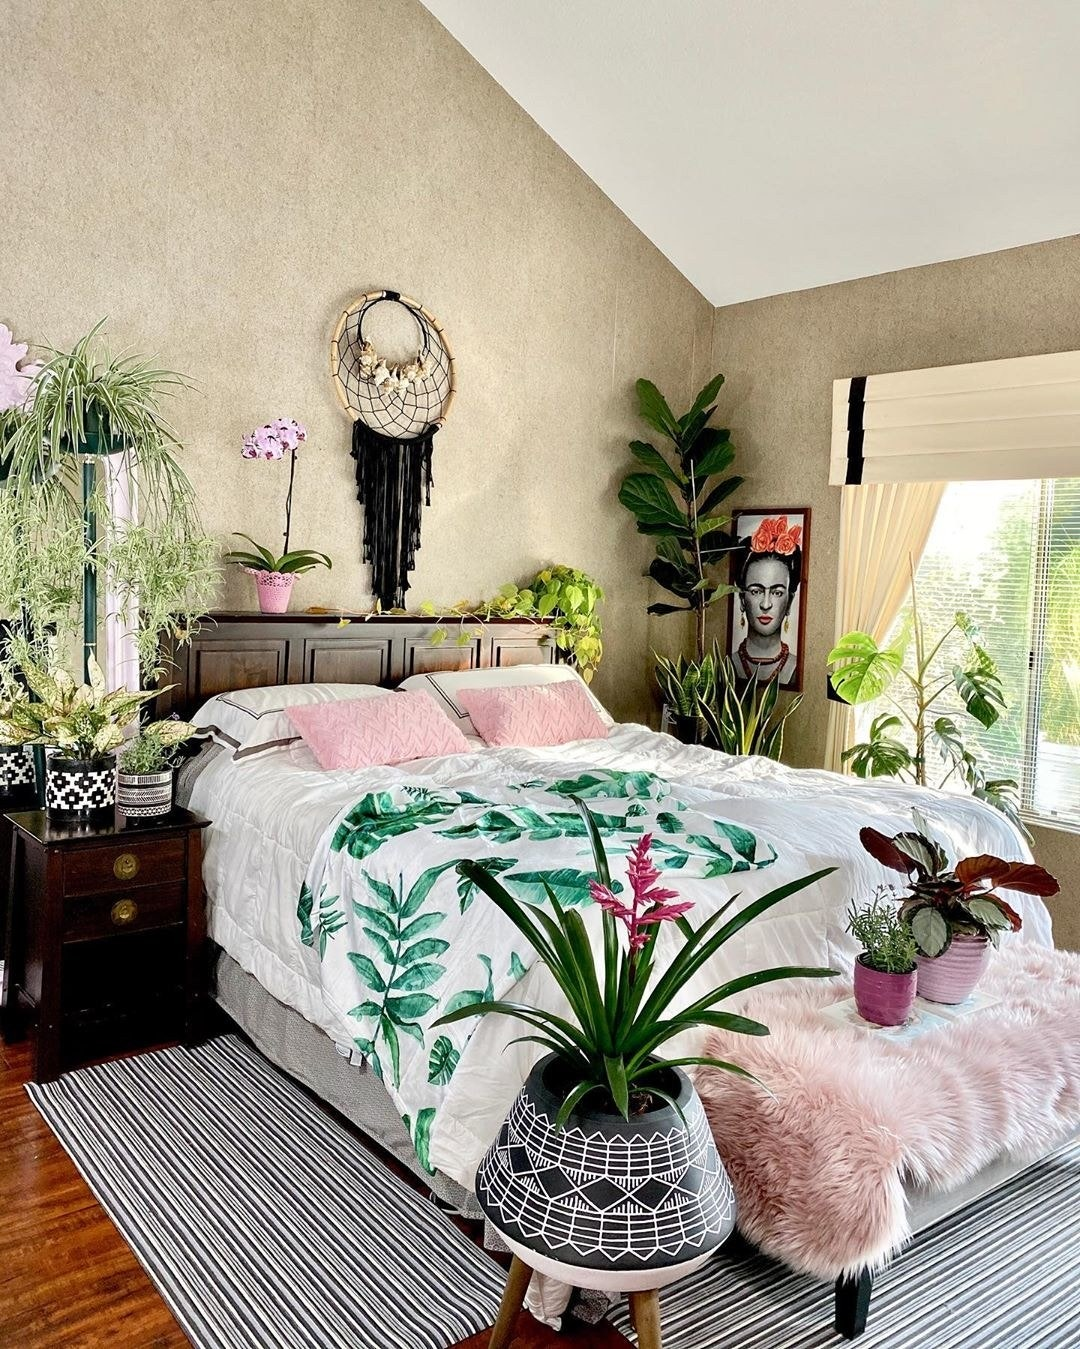 bedroom with colorful comforter and plants